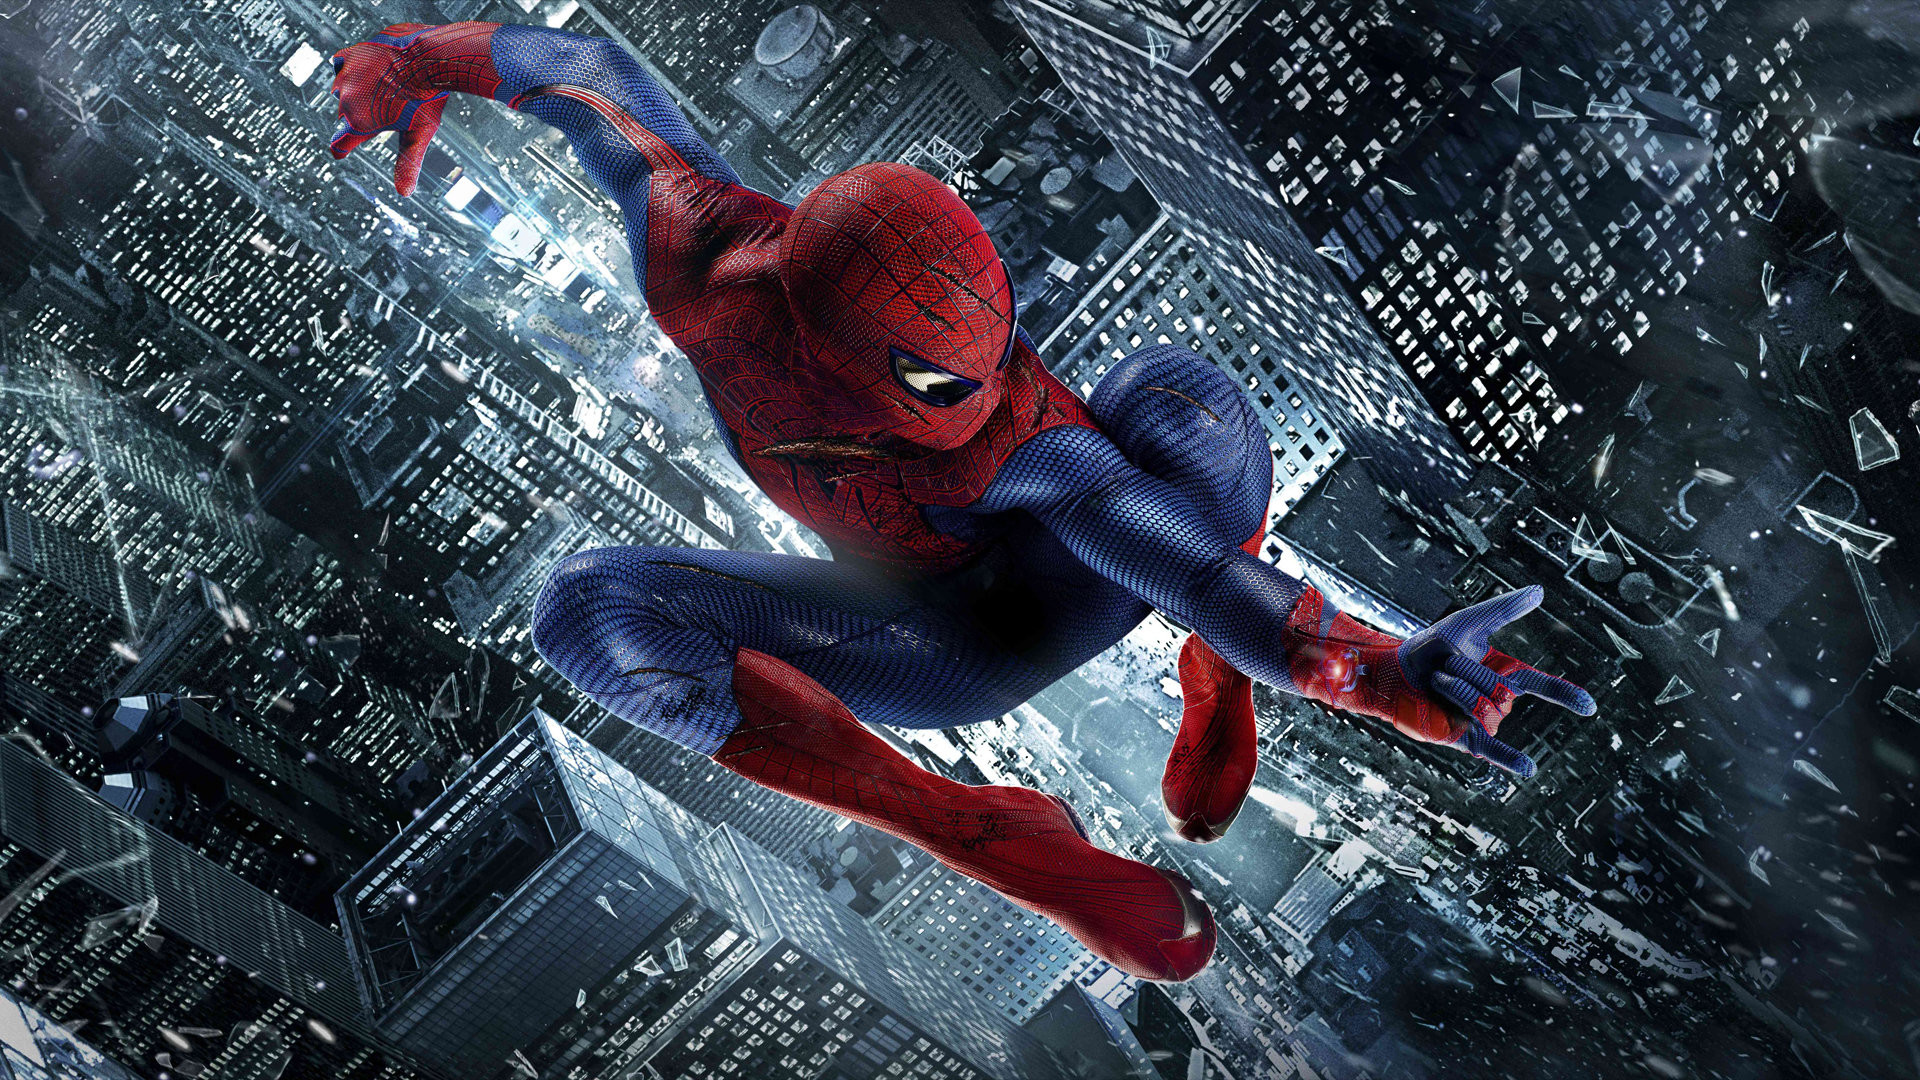 Spiderman Hd Wallpaper 75 Pictures